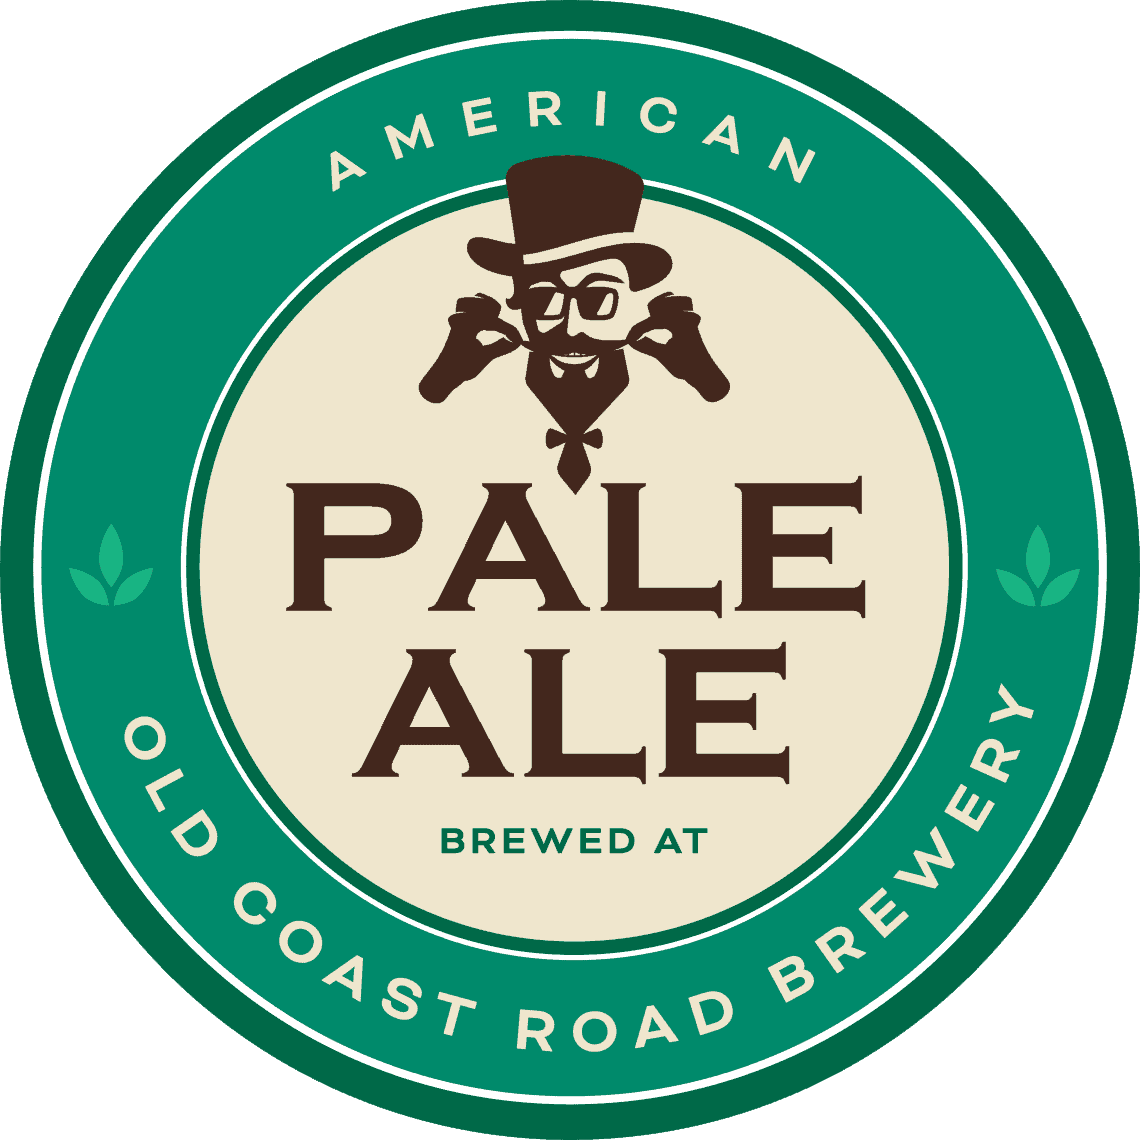 Just like the description for IPA, this started as an English style but the Yanks hijacked it and have made it the most popular craft beer style. It's got typical fruity hop notes, low malt flavour, and a mild bitter finish.